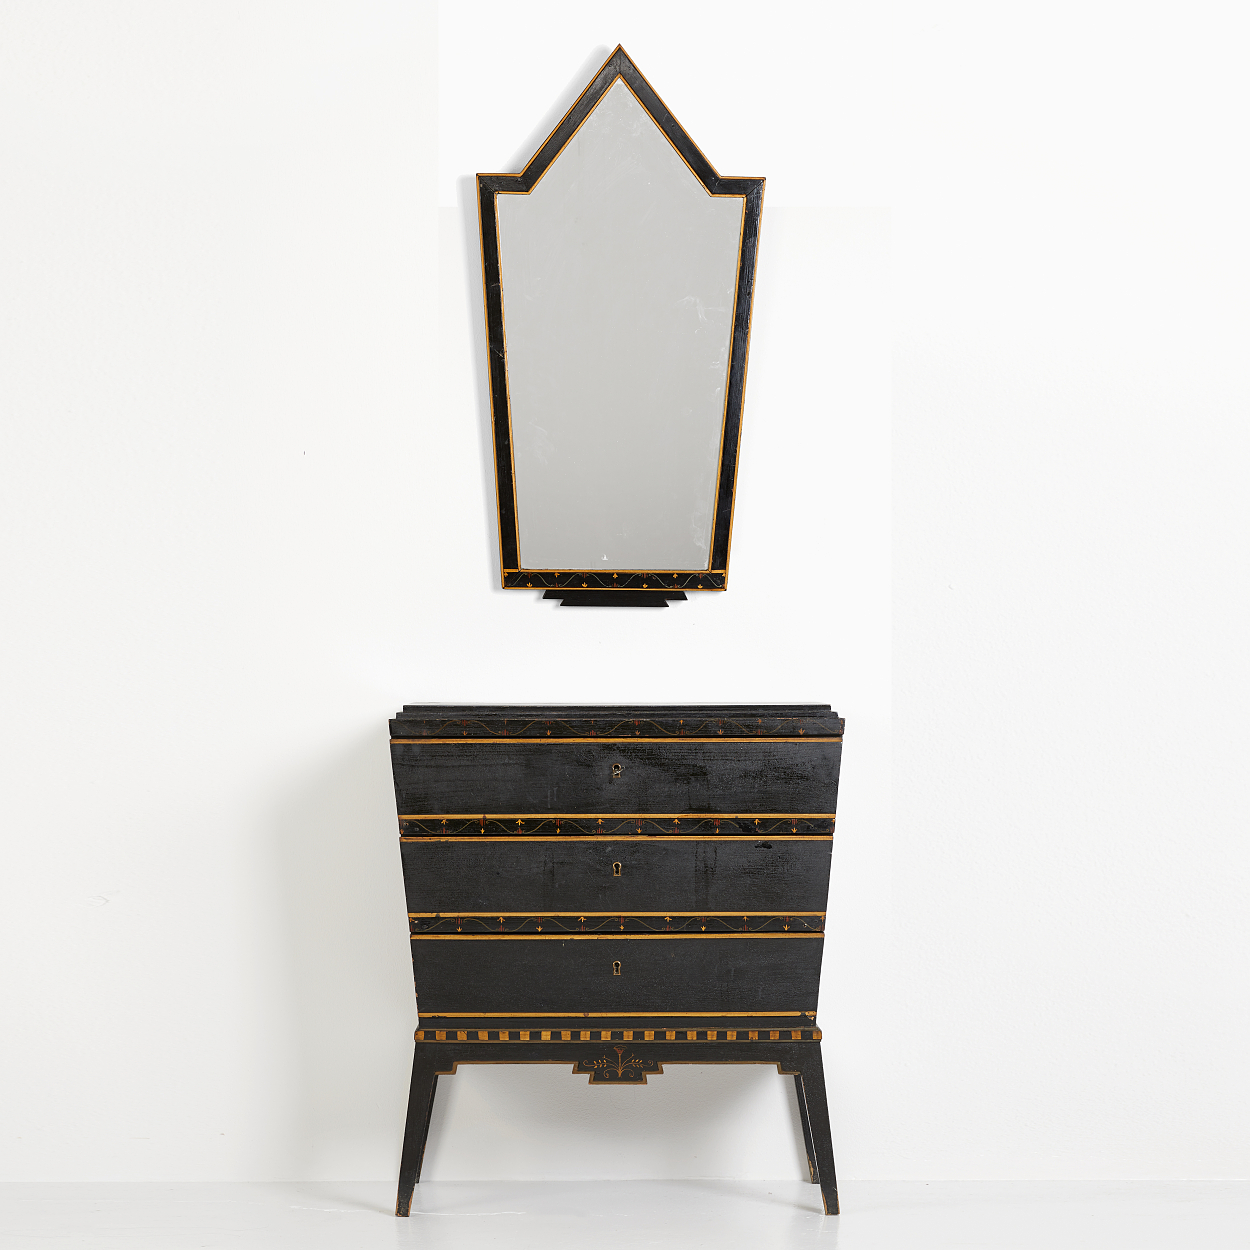 An Otto Schulz chest of drawers and a mirror